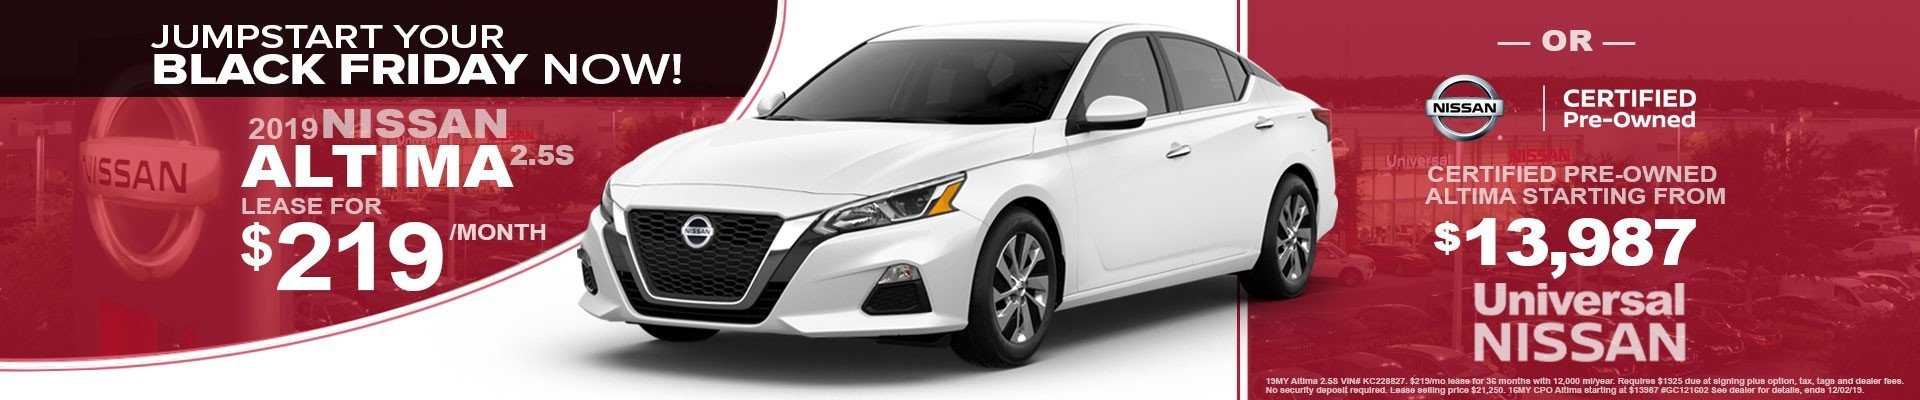 ALTIMA Leases Starting at $219 Per Month